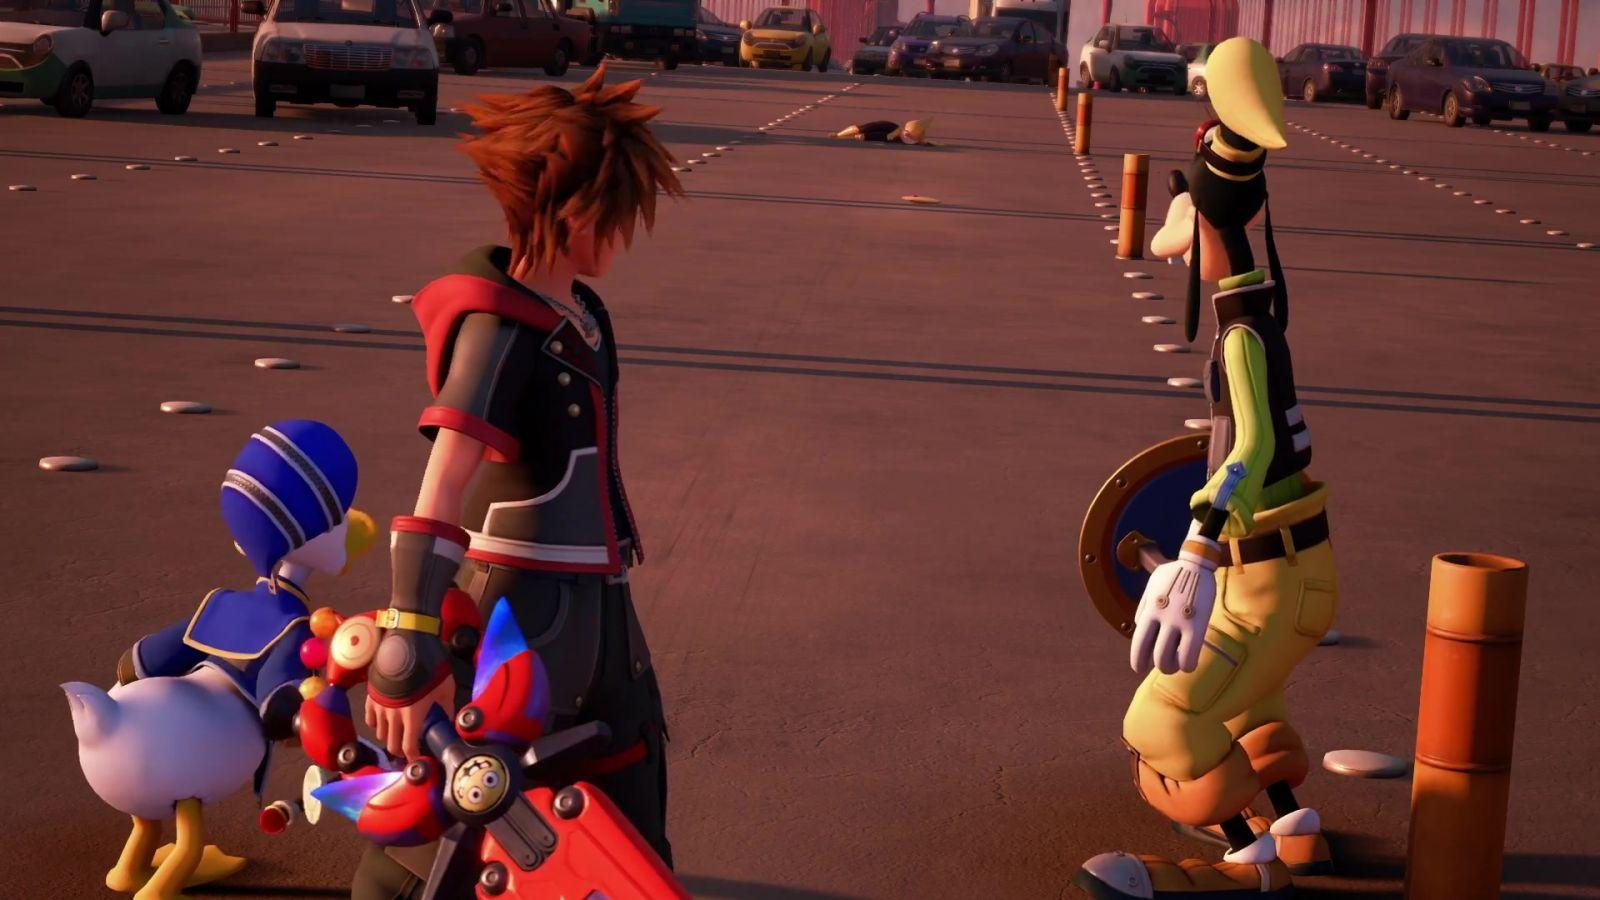 【KINGDOM HEARTS III】TGS 2018 Trailer Short Ver. 027